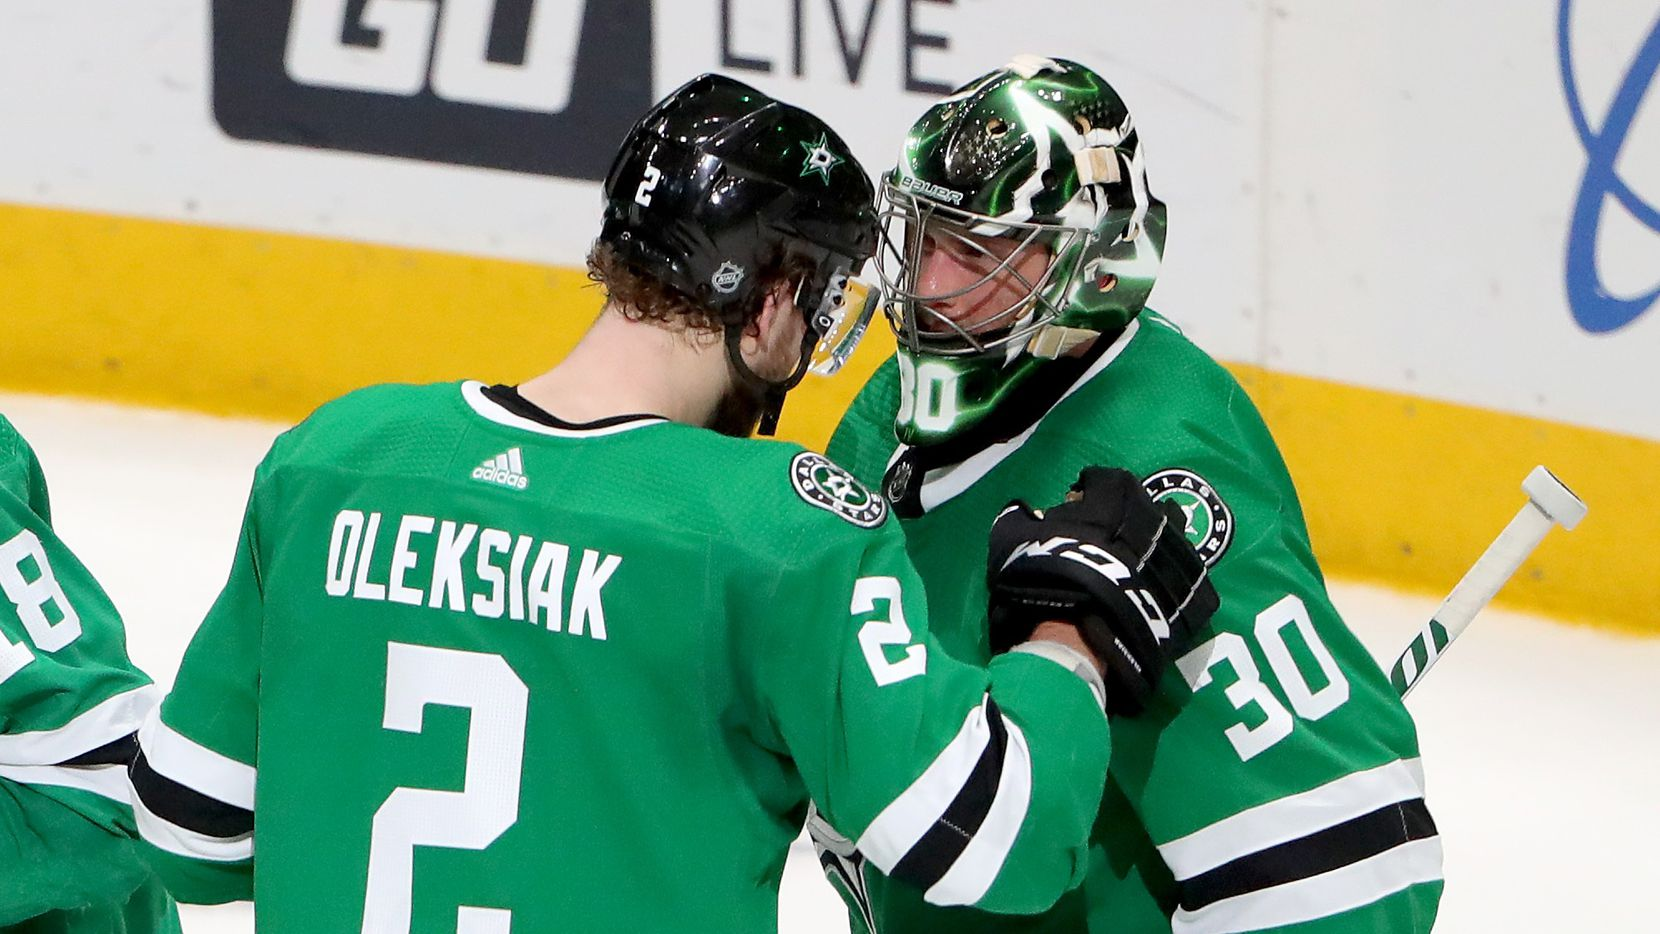 Ben Bishop #30 of the Dallas Stars celebrates with Jamie Oleksiak #2 of the Dallas Stars after the Dallas Stars beat the Arizona Coyotes 3-2 at American Airlines Center on February 19, 2020 in Dallas, Texas.